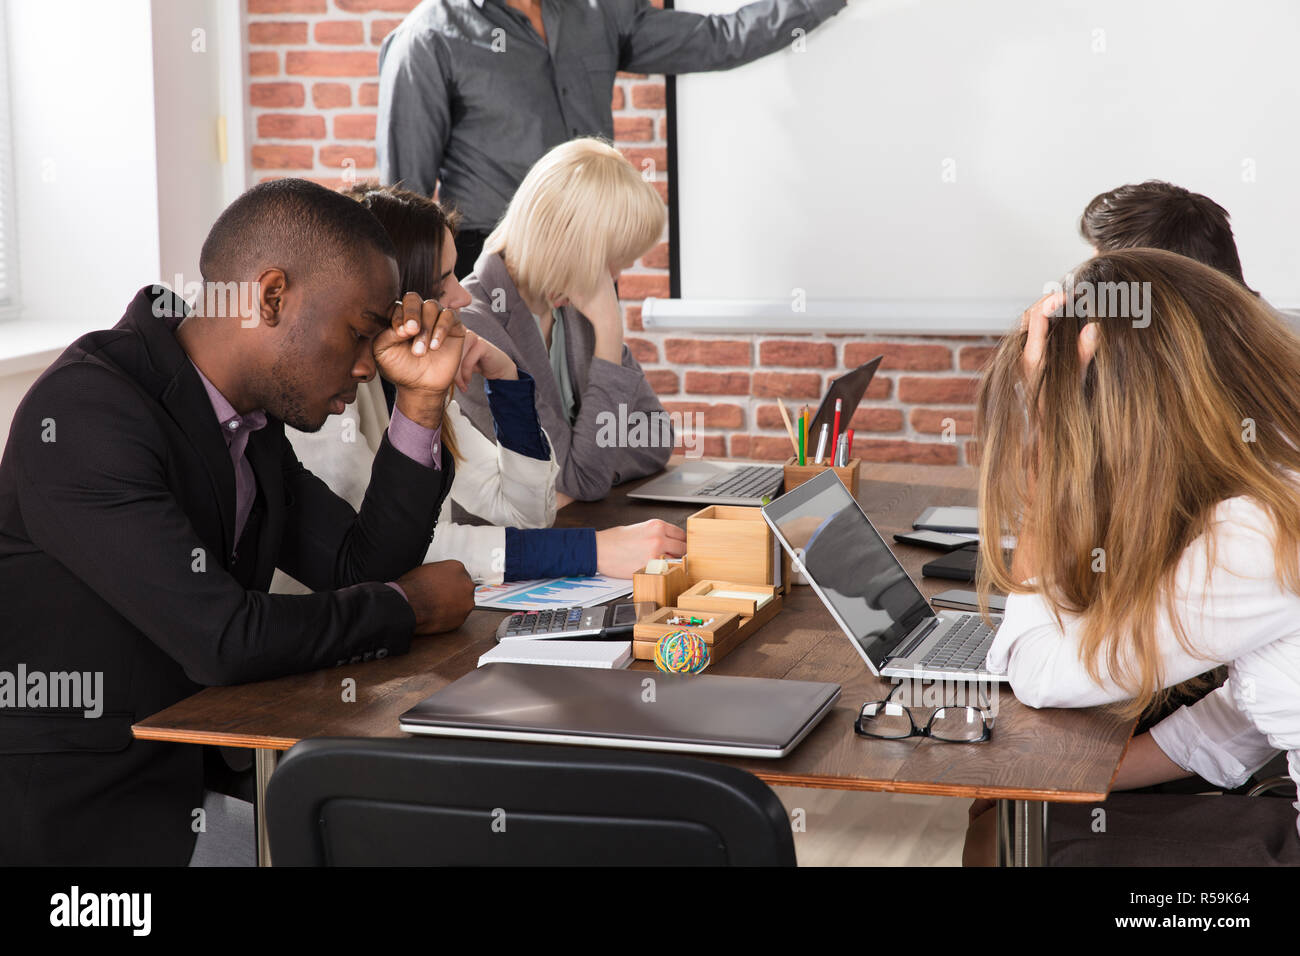 Tired Young Businesspeople Bored During Meeting - Stock Image